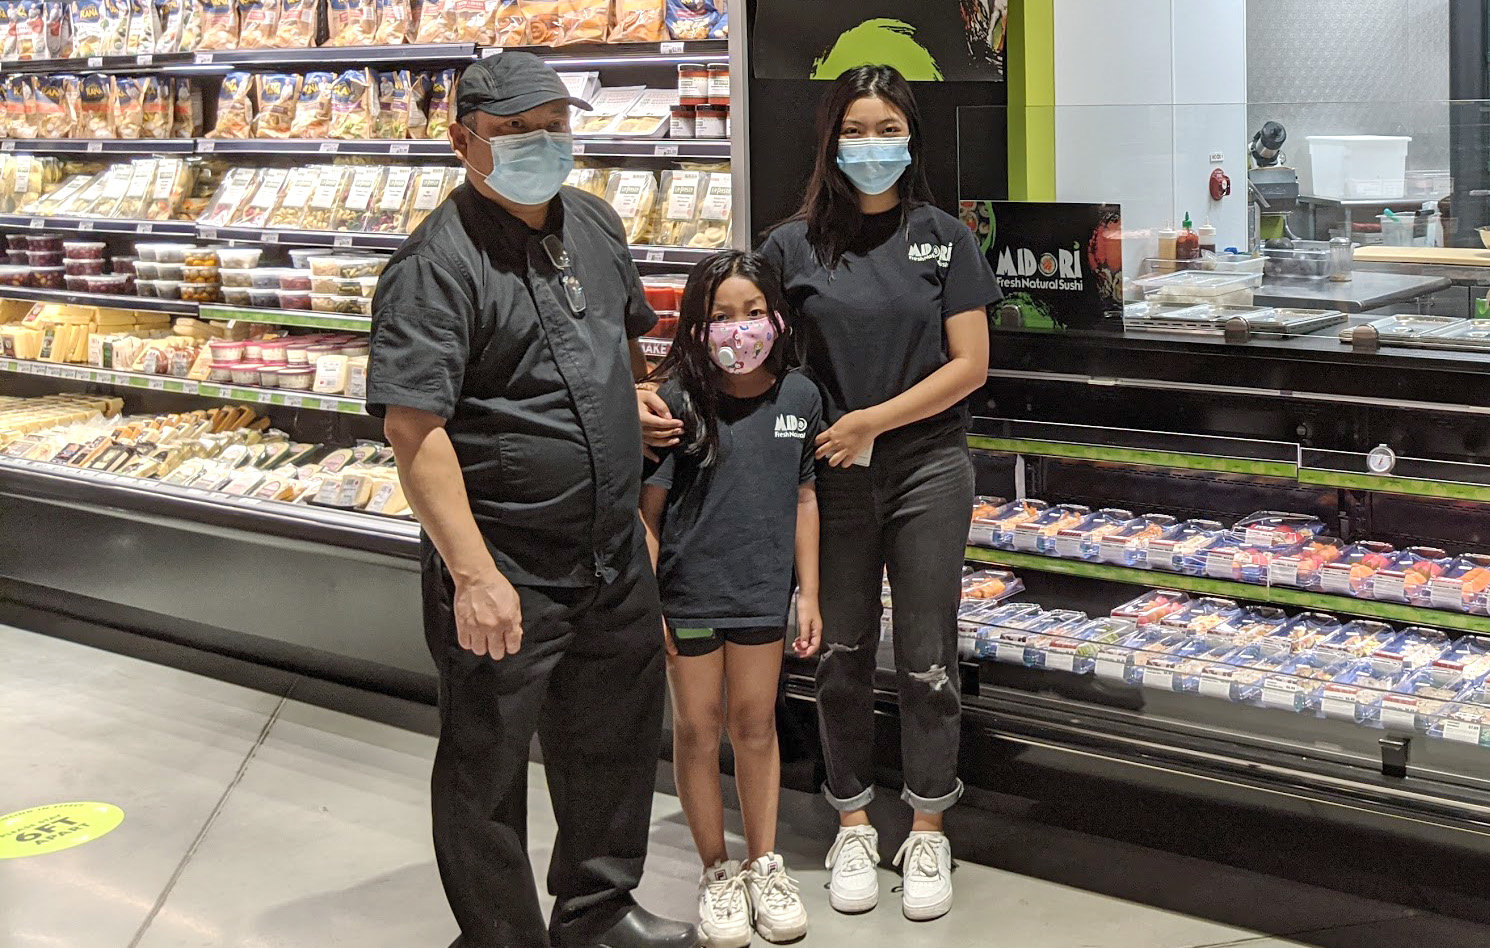 Midori Sushi Owner Ye Myint stands in front of his family's sushi bar inside GreenStar's new store with his two daughters, Thone Myint (center) and Haythi Myint.